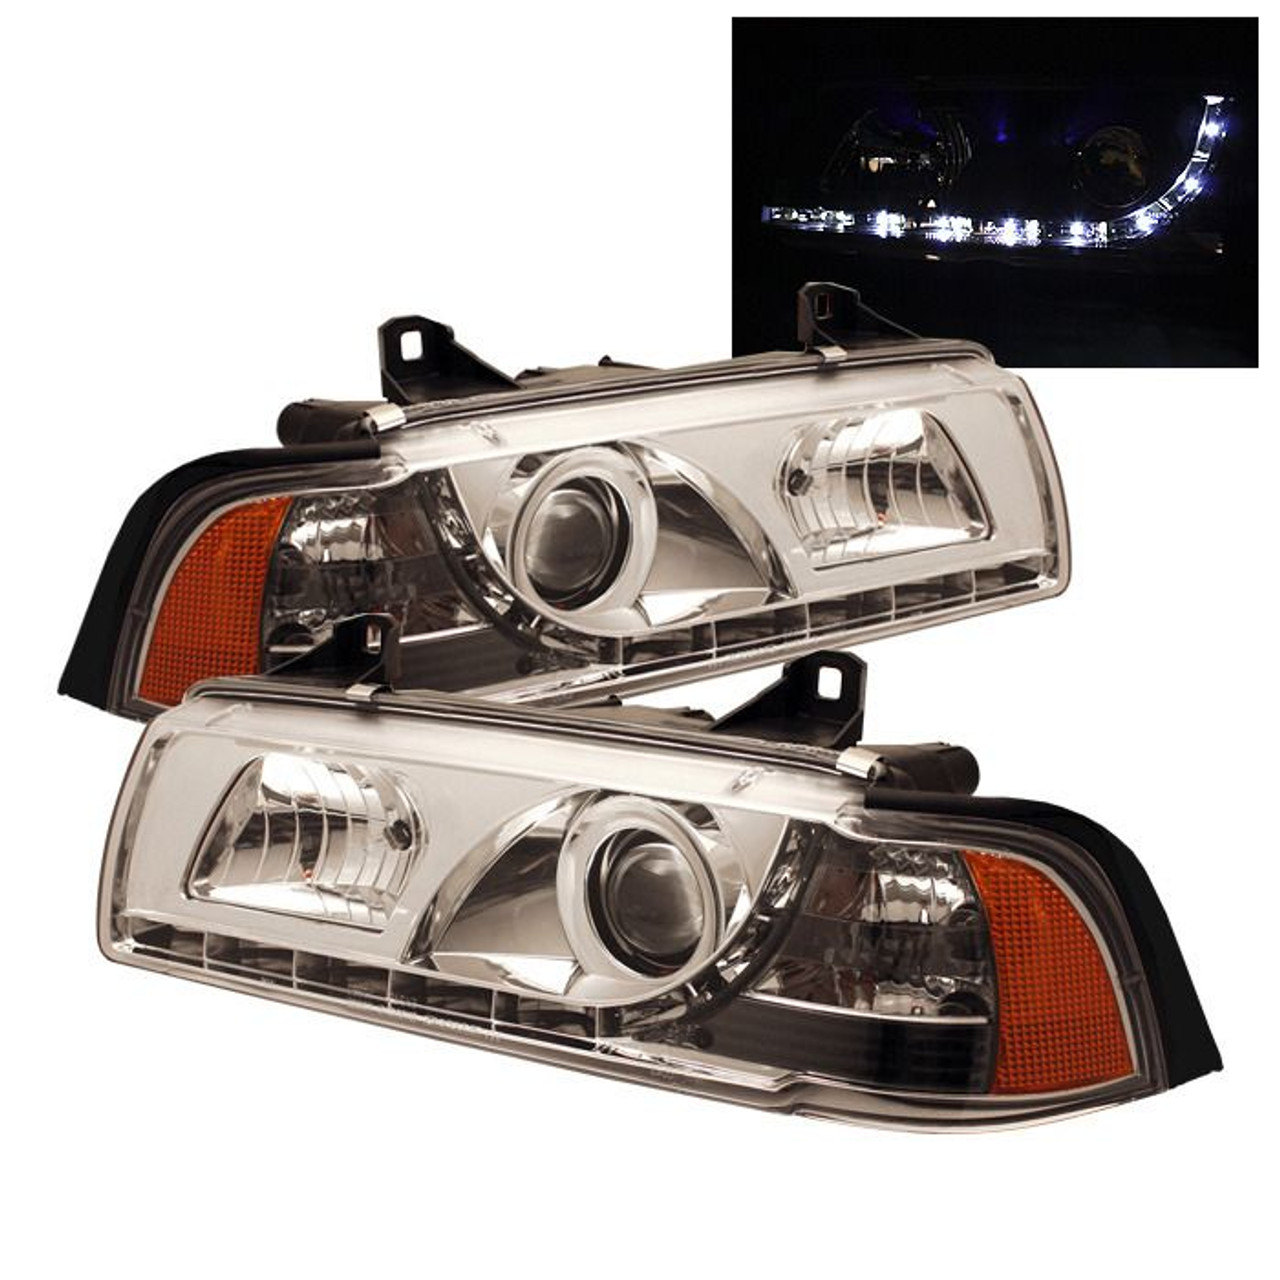 Spyder Chrome Projector Headlights For 1992 1998 Bmw 318i 325i 328i E36 Coupe